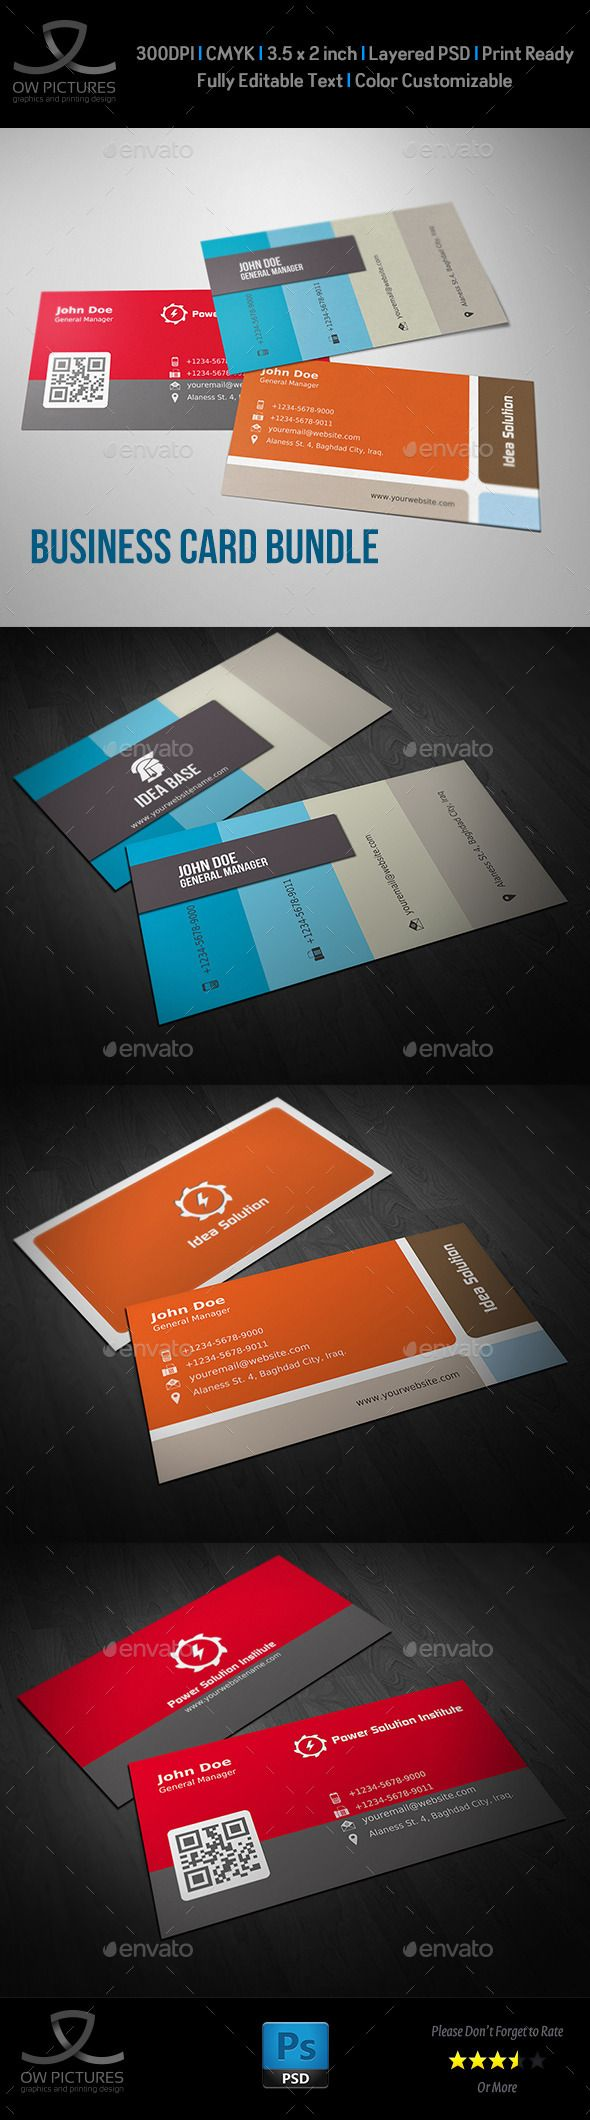 28 best heres my card images on pinterest business cards corporate business card bundle vol5 colourmoves